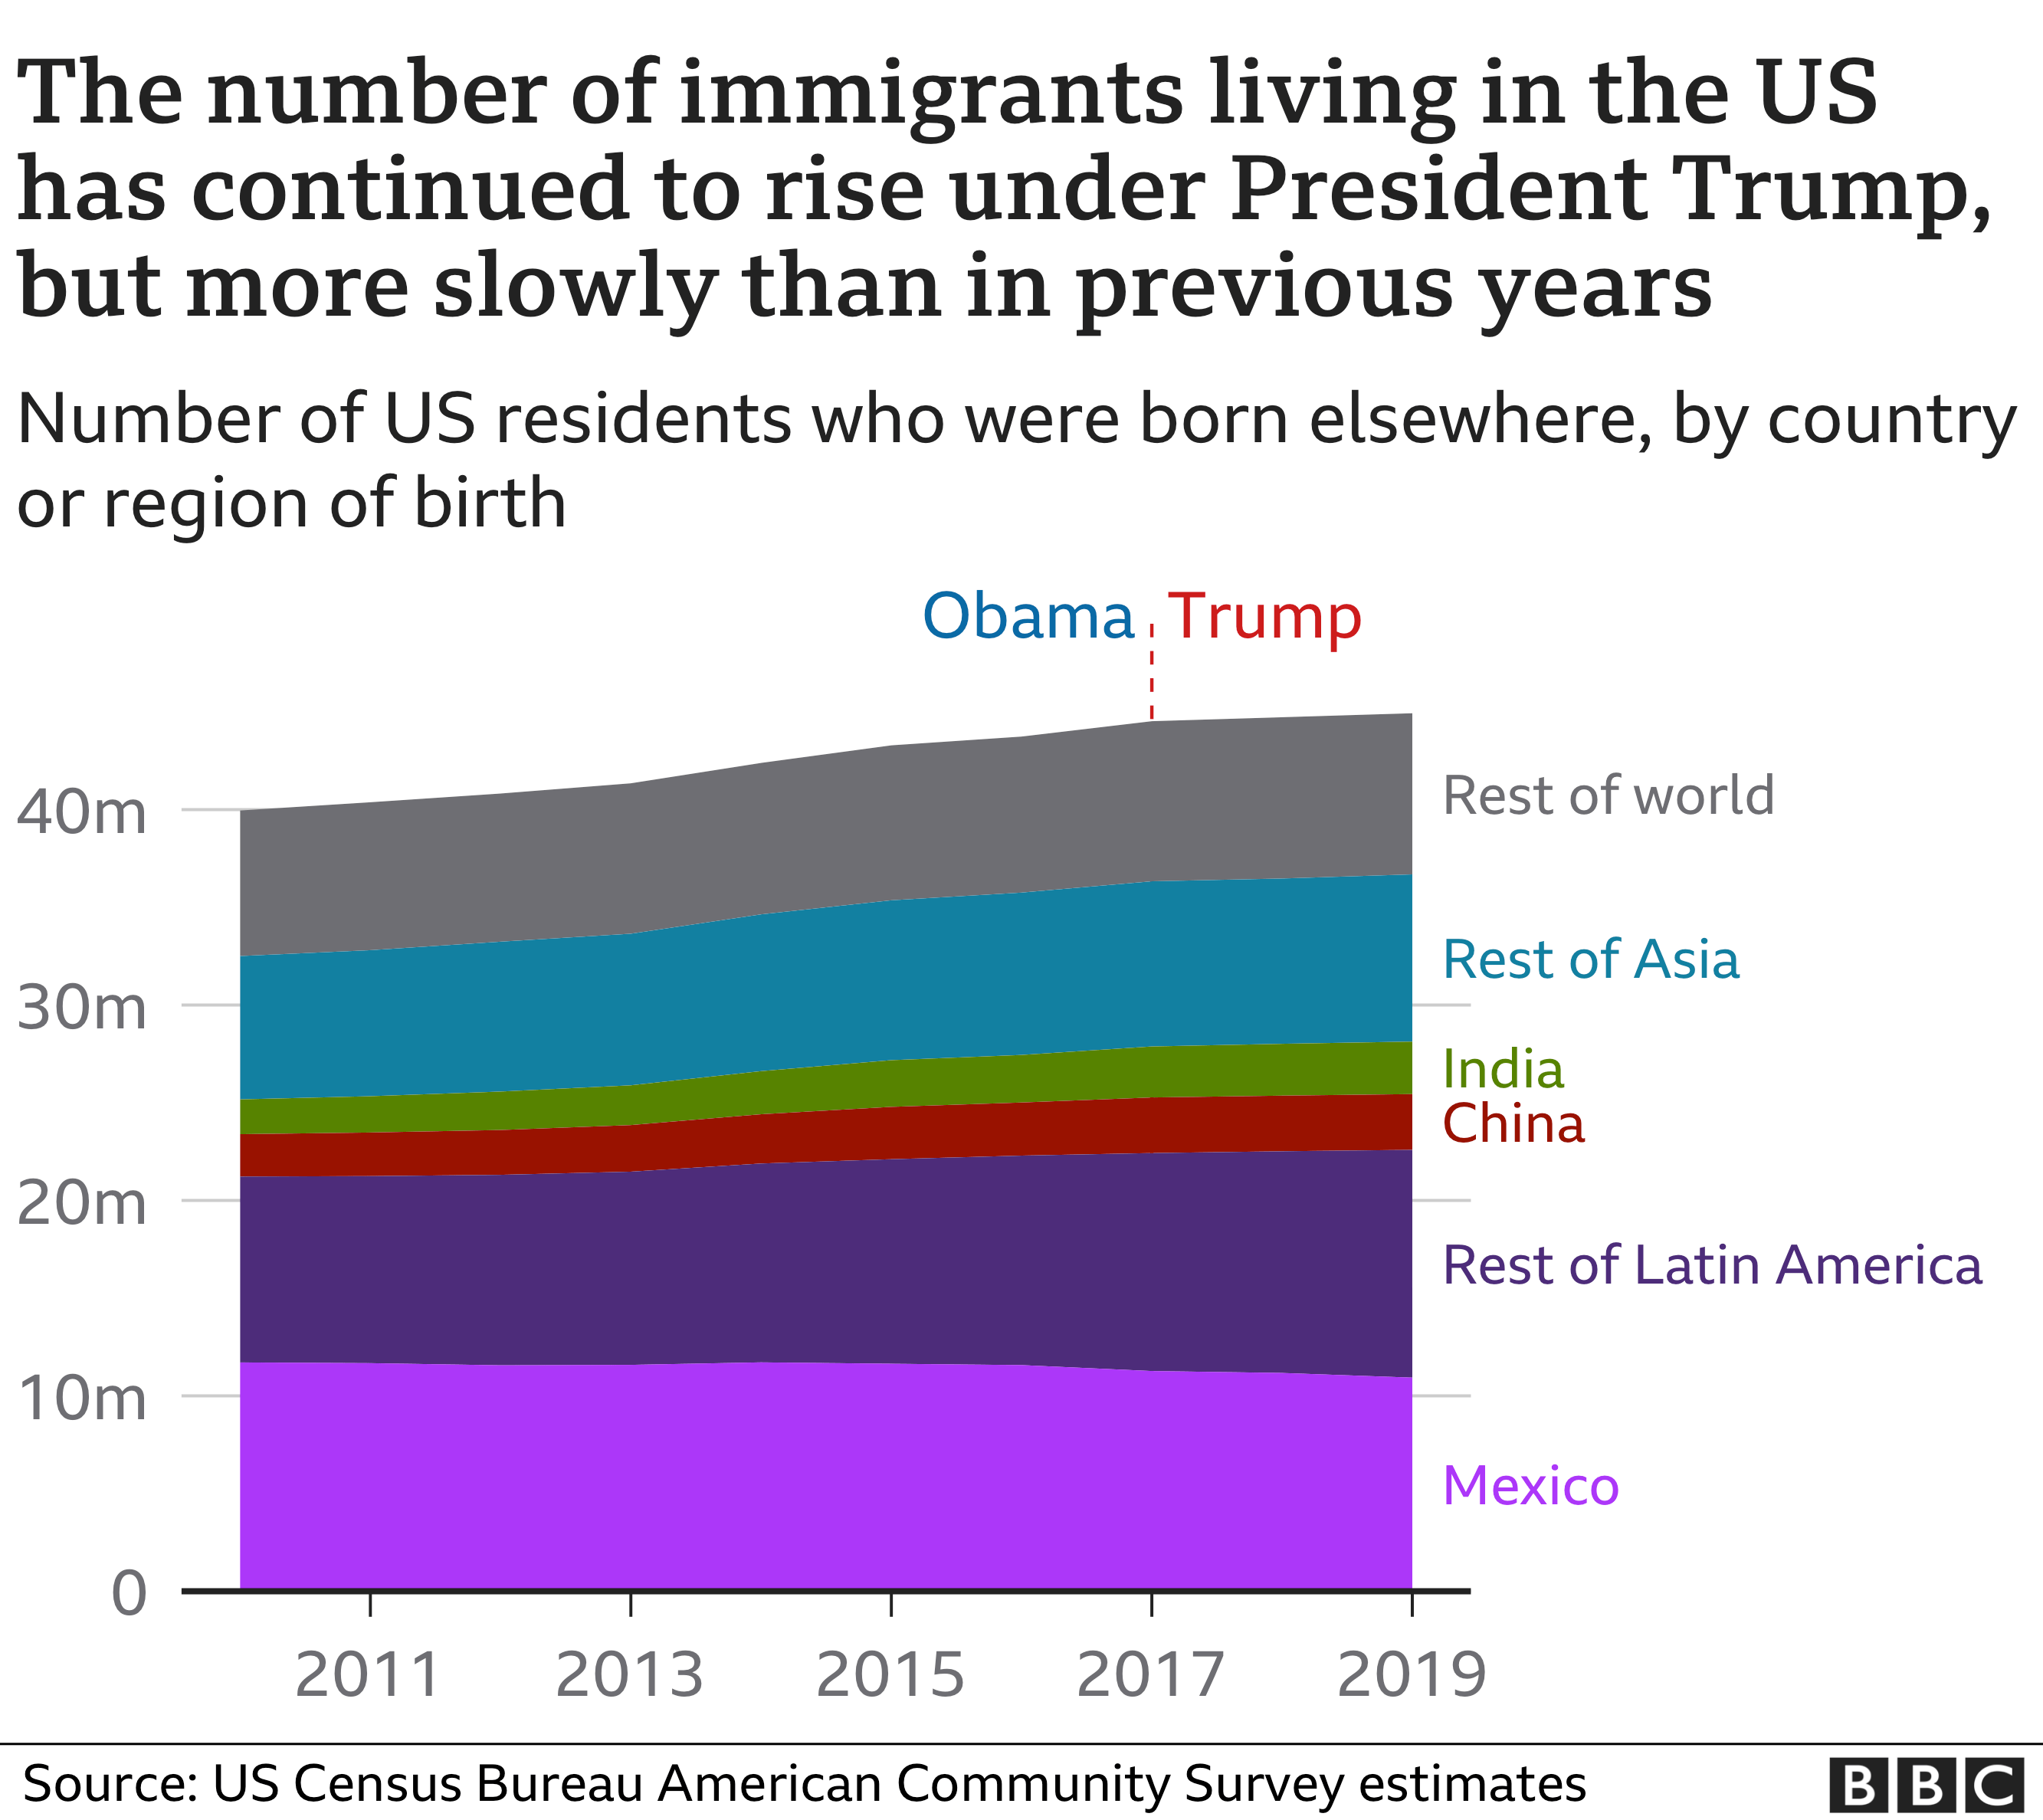 The number of immigrants living in the US has continued to rise under President Trump, but more slowly than in previous years